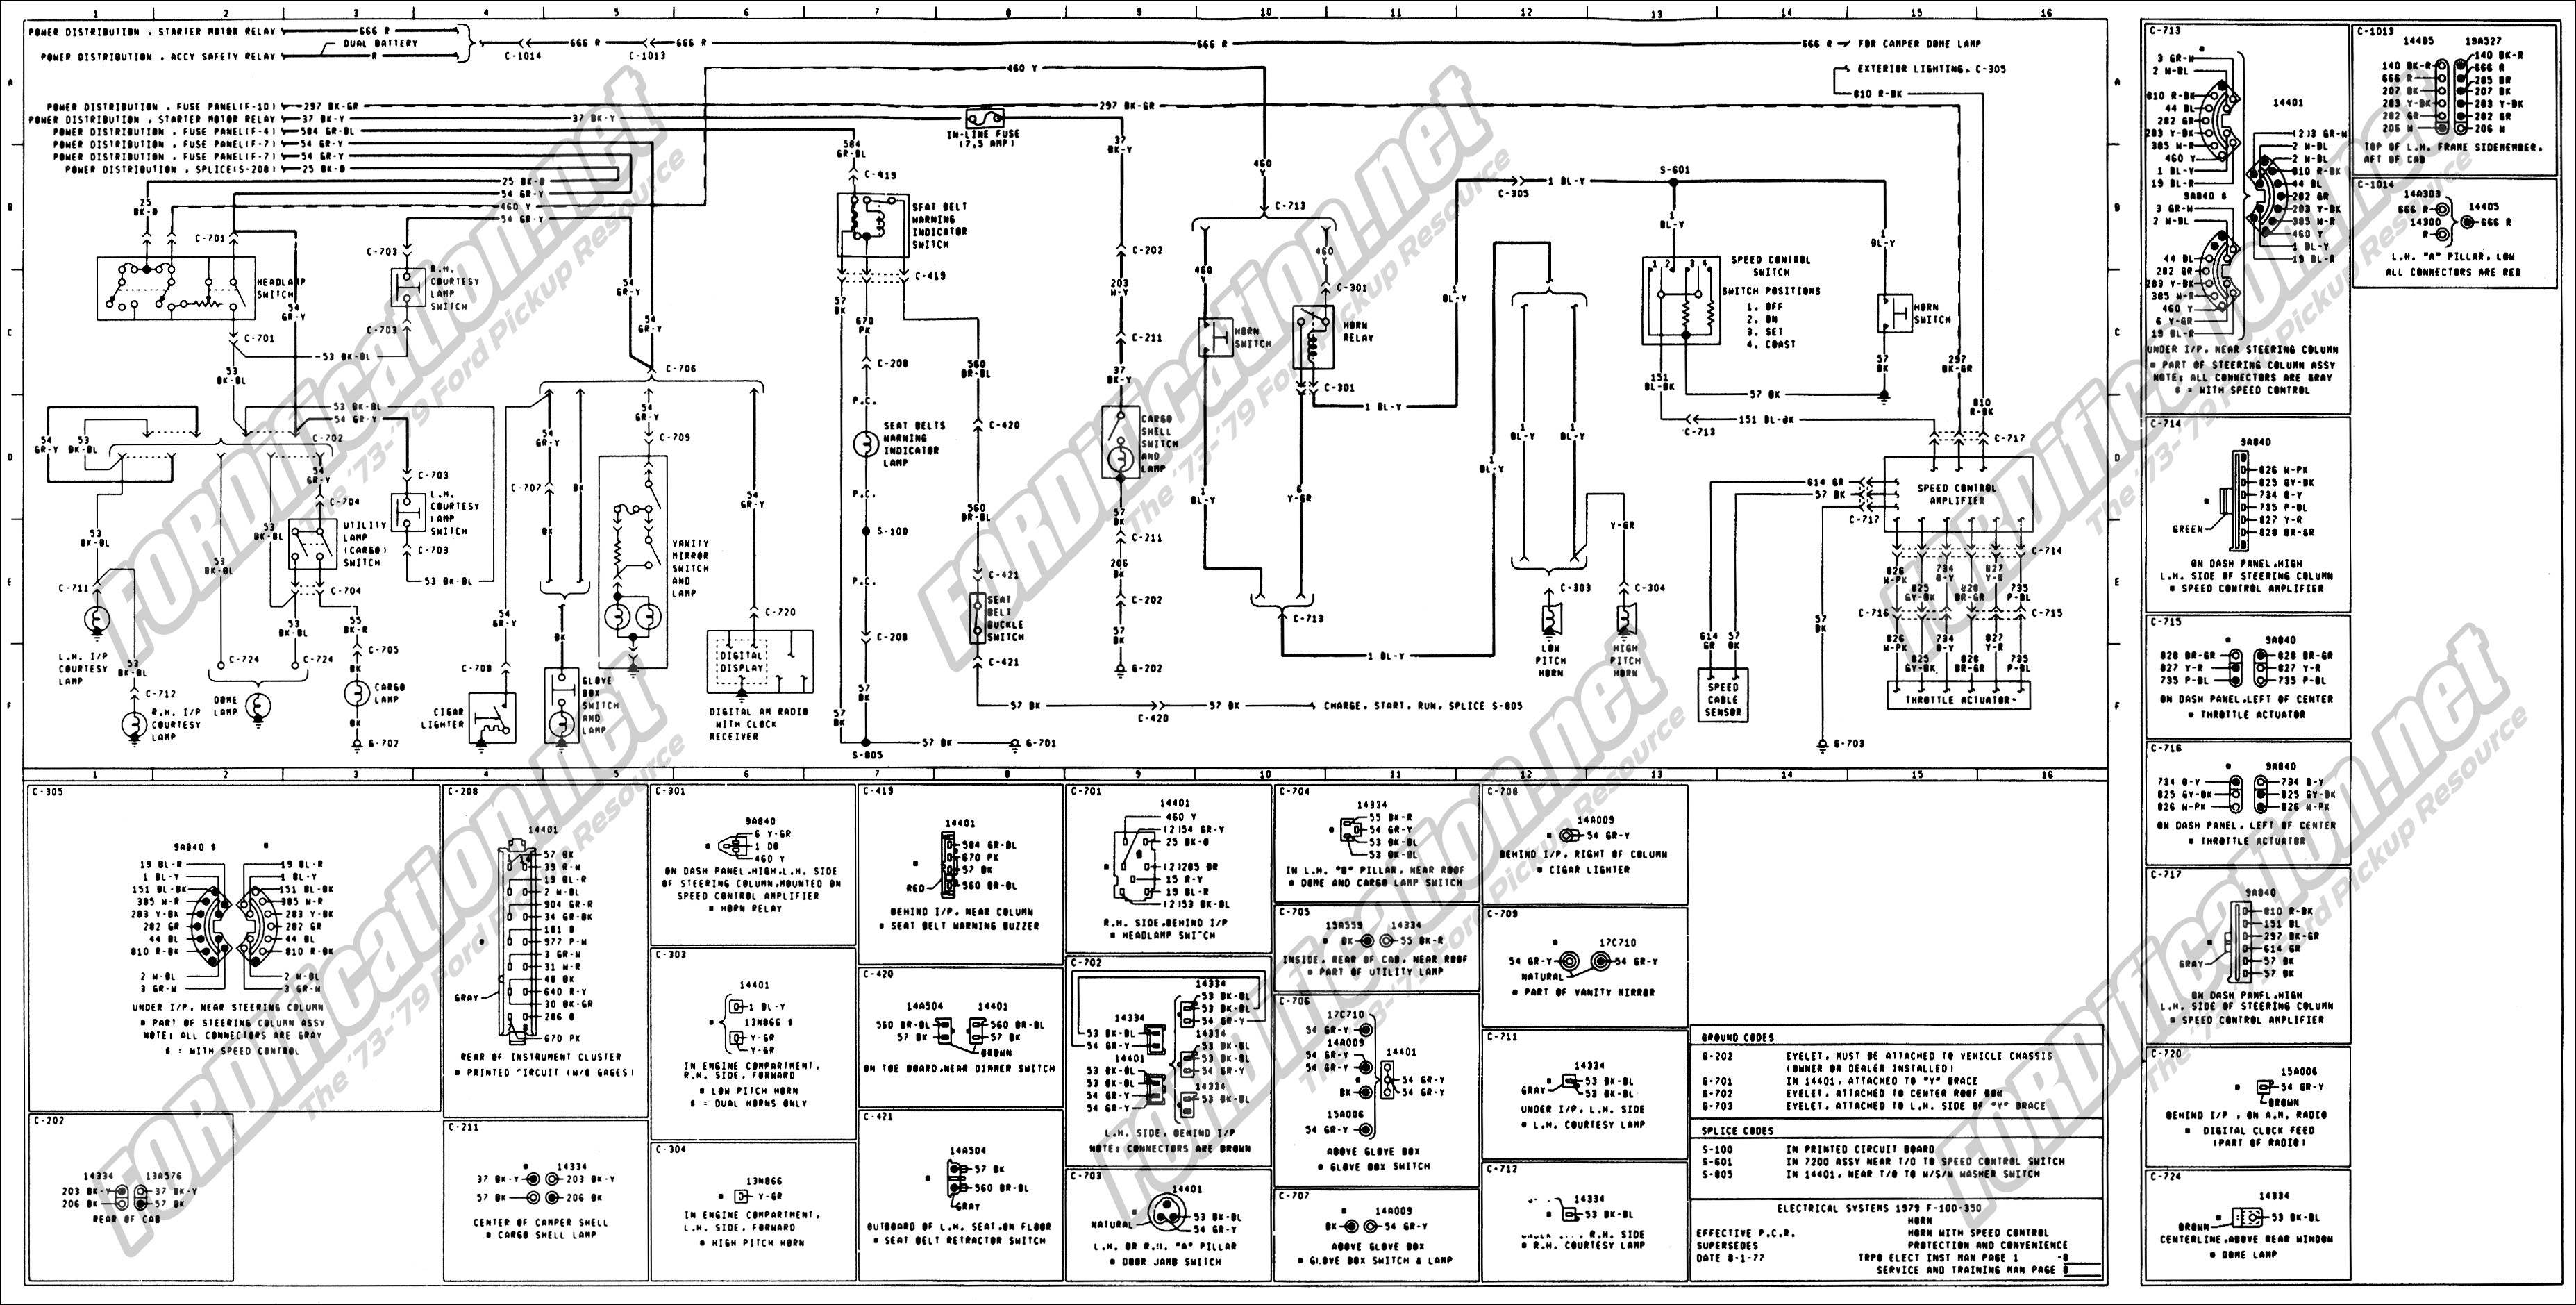 [DIAGRAM] 1977 Ford F150 Wiring Diagram FULL Version HD